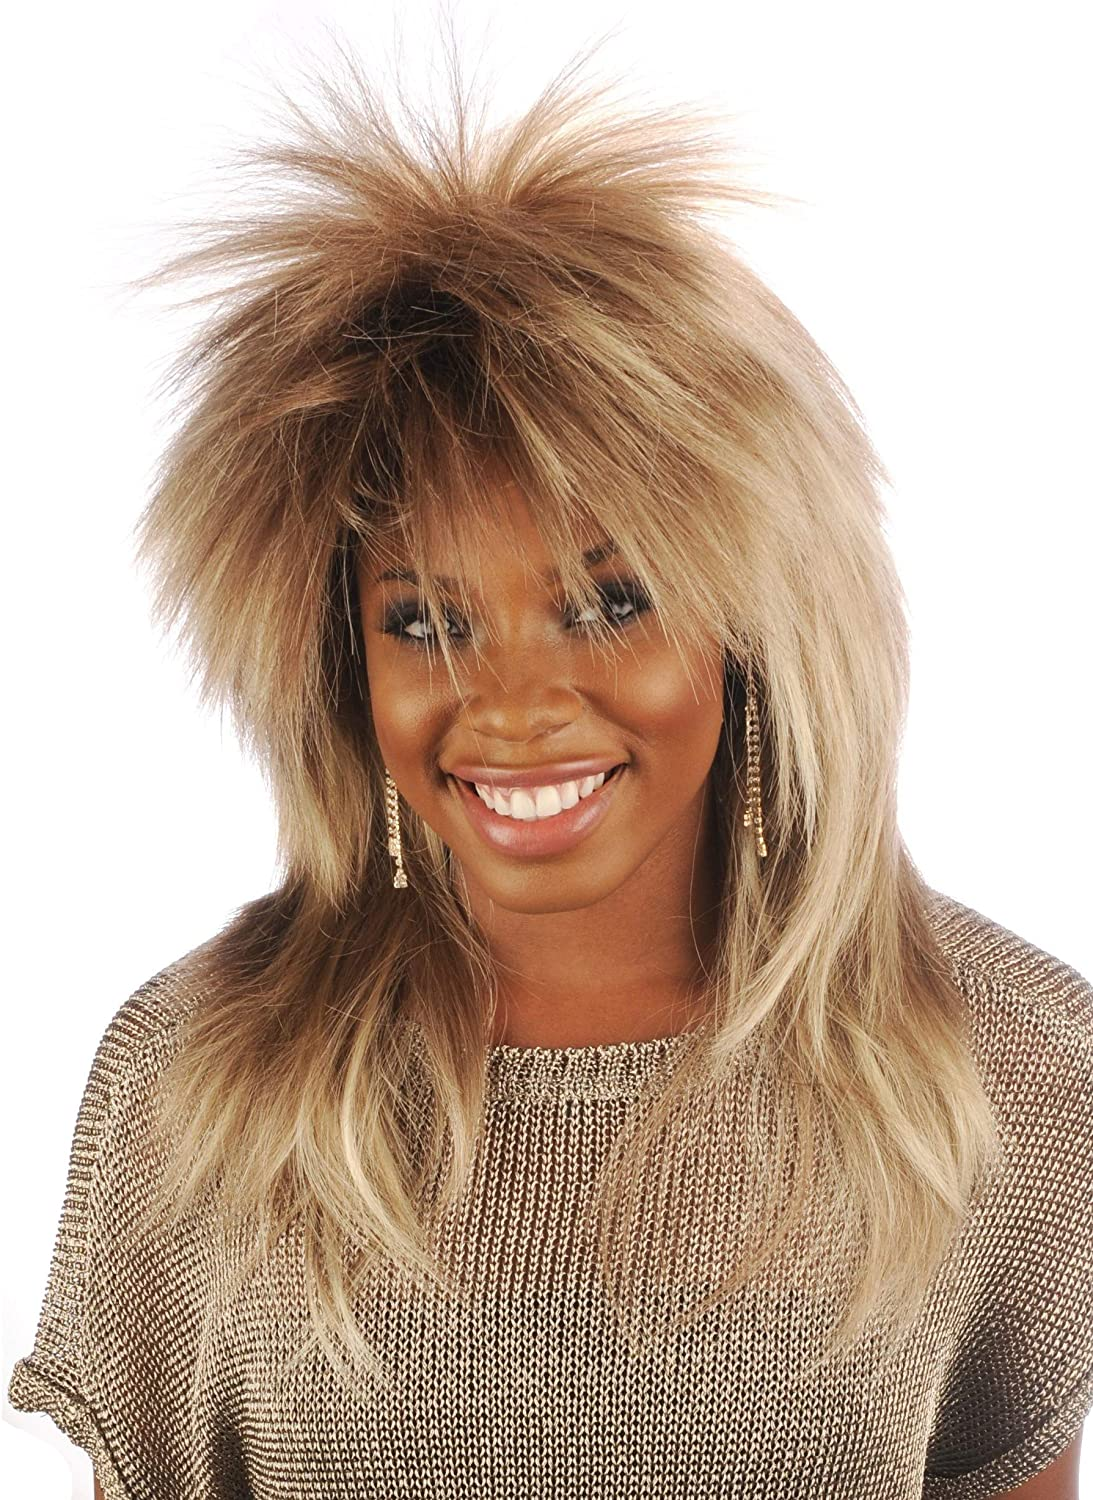 Regular store Tina Cheap mail order shopping Turner Wig Character Theatrical Deluxe - 1980's Costume